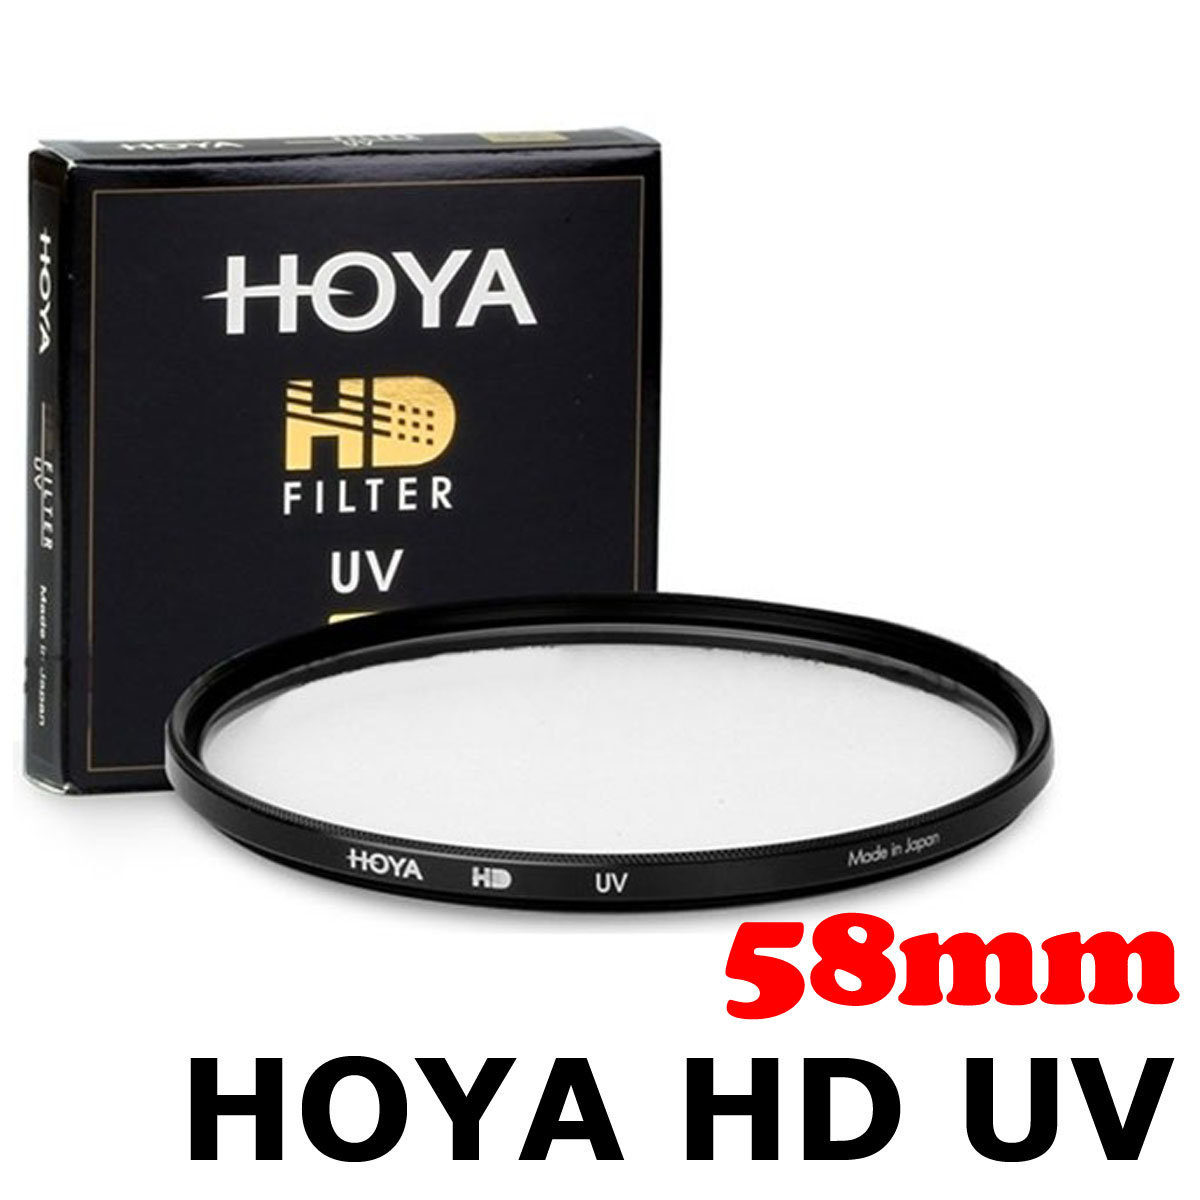 HD UV 58mm Filter 超薄多層鍍膜防水UV保護濾鏡